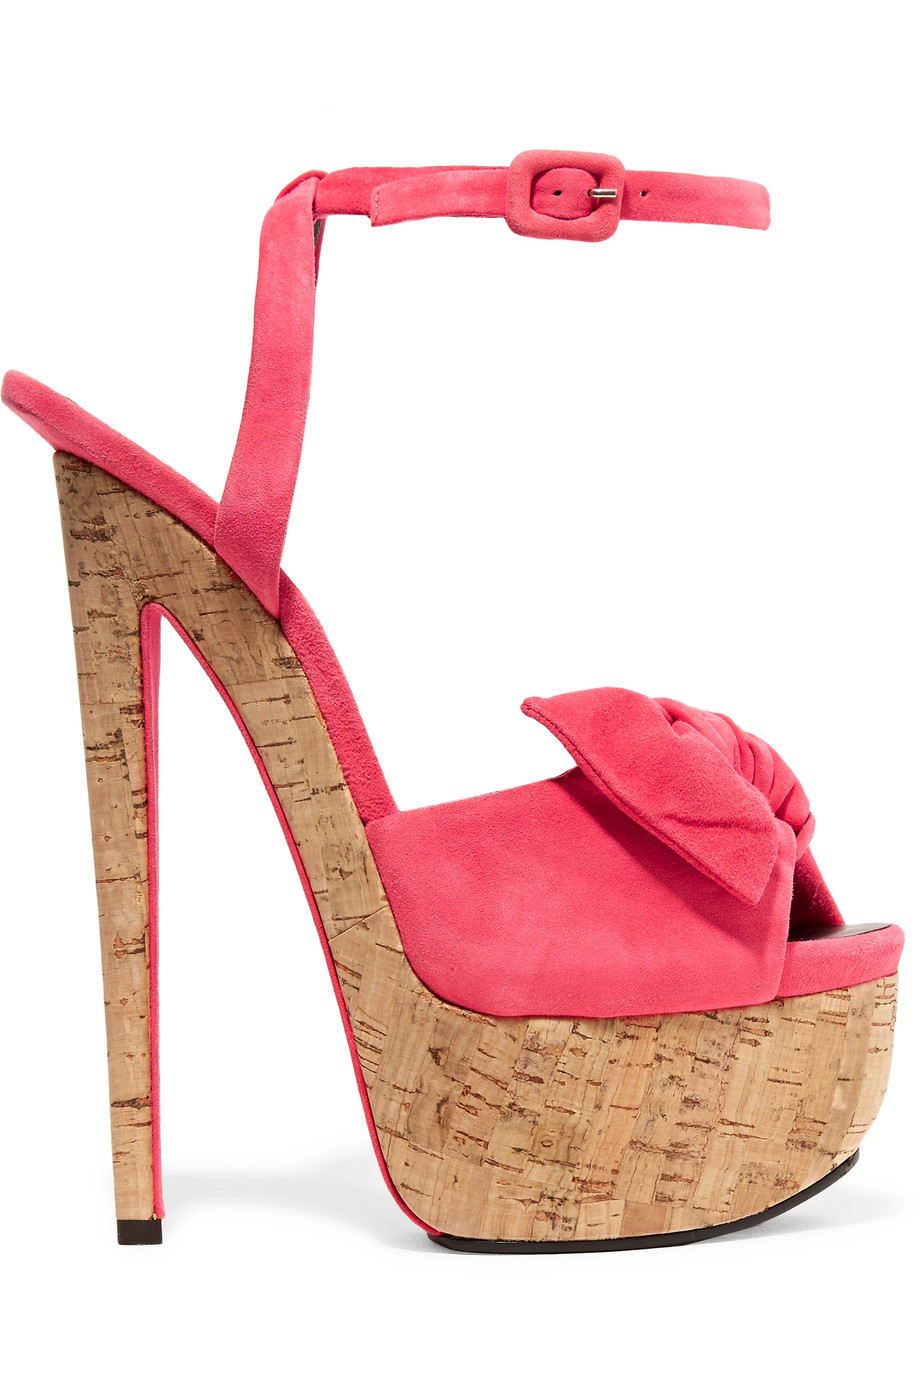 GIUSEPPE ZANOTTI Bow-Embellished Suede Sandals in Coral